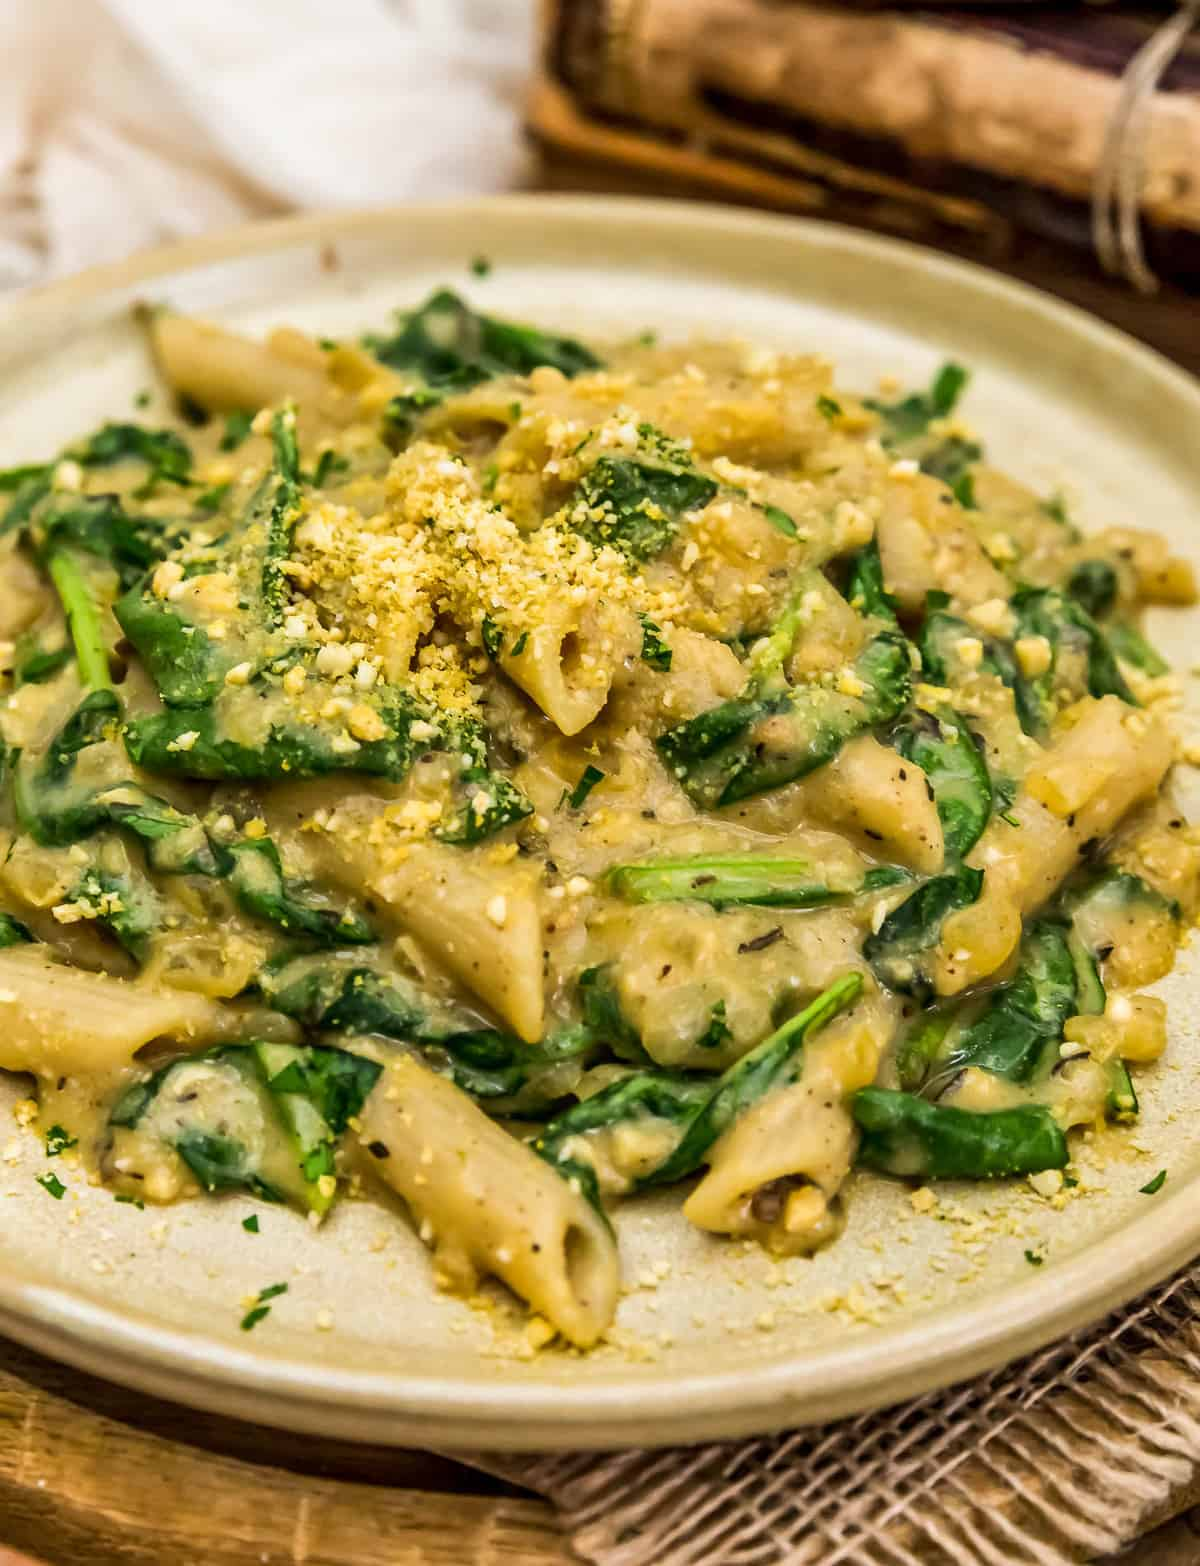 Plated Vegan Creamy Spinach Pasta